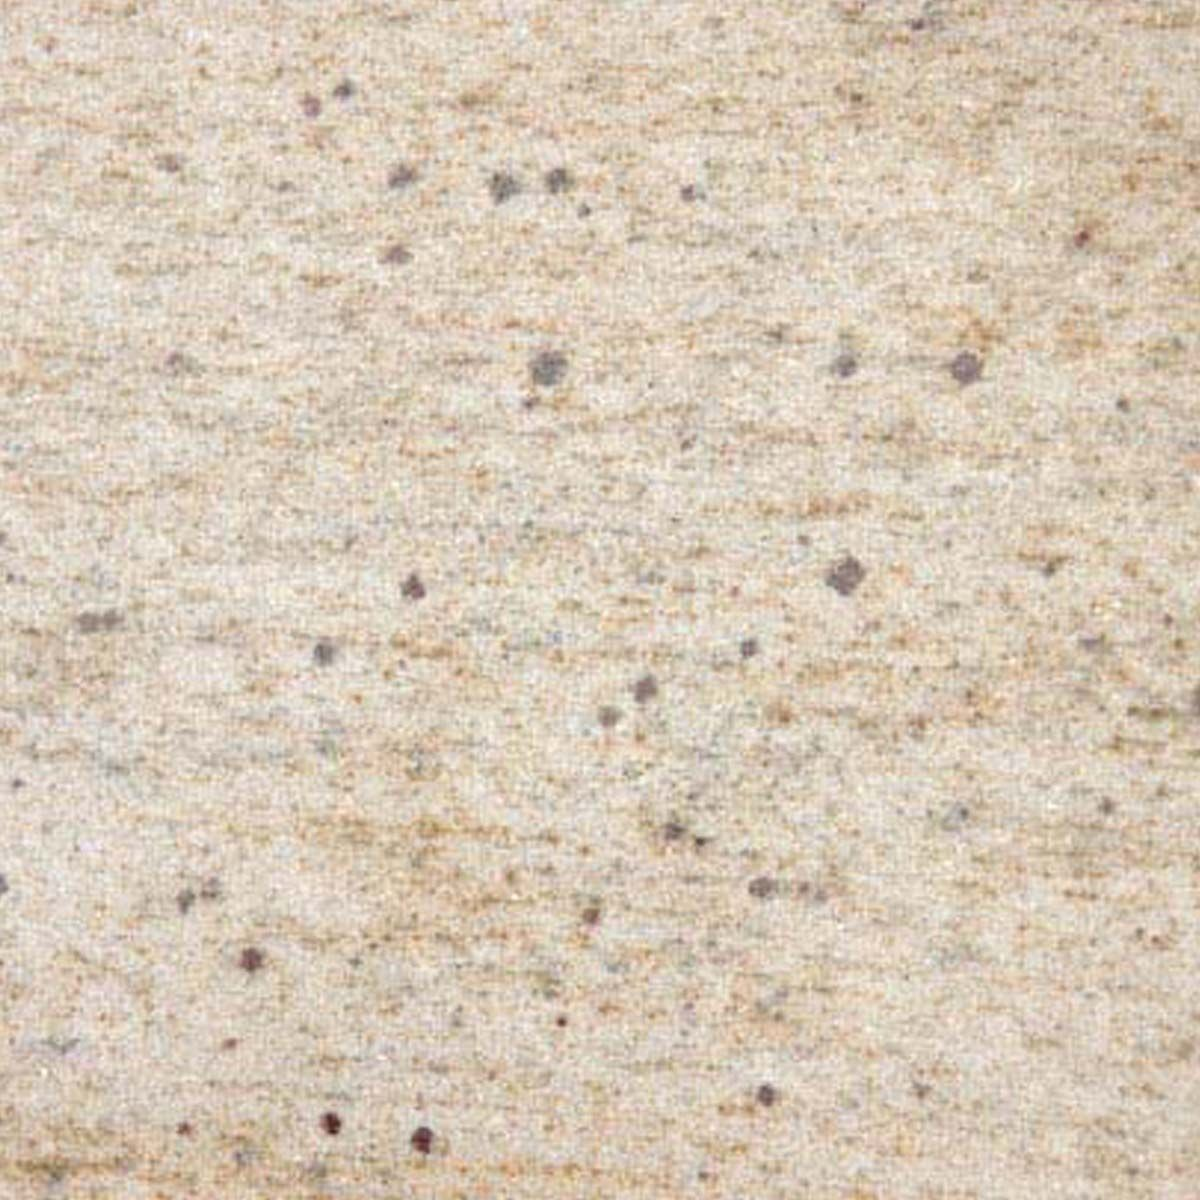 Kashmir Gold Granite Countertops Kashmir Gold Granite Tile Slabs And Prefabricated